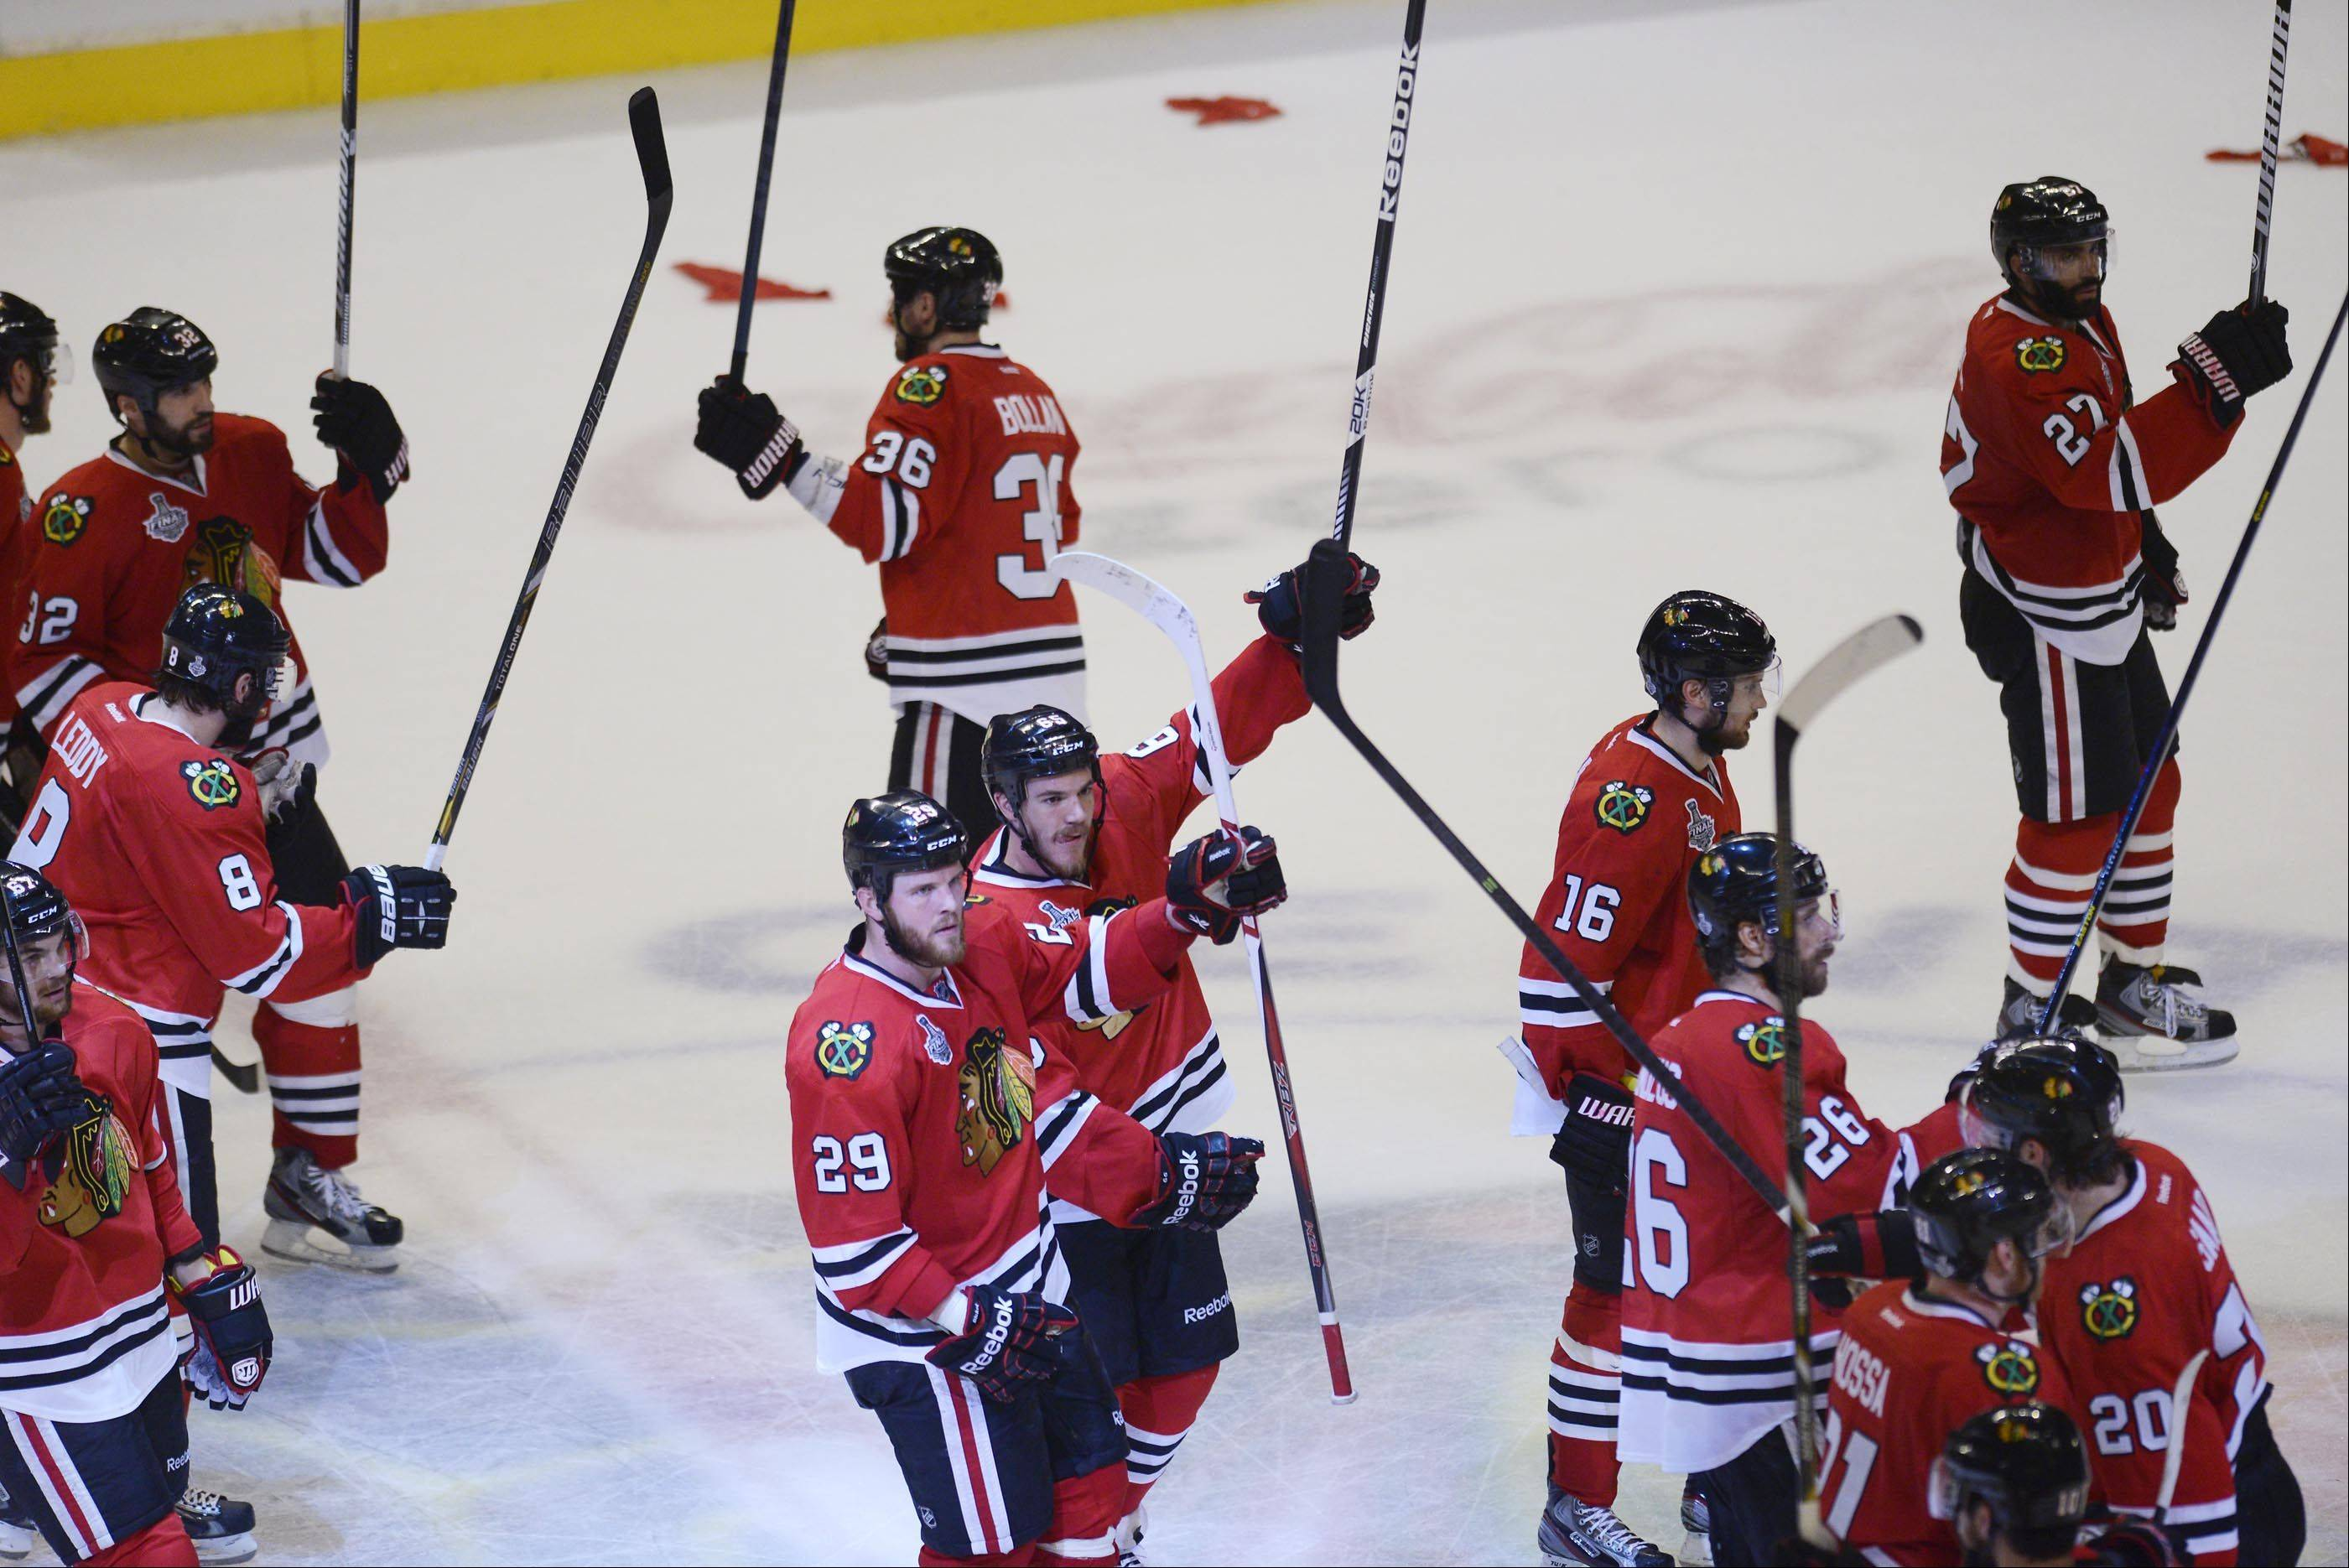 The Blackhawks salute their fans after beating the Bruins in Game 5 of the Stanley Cup Final at the United Center on Saturday.